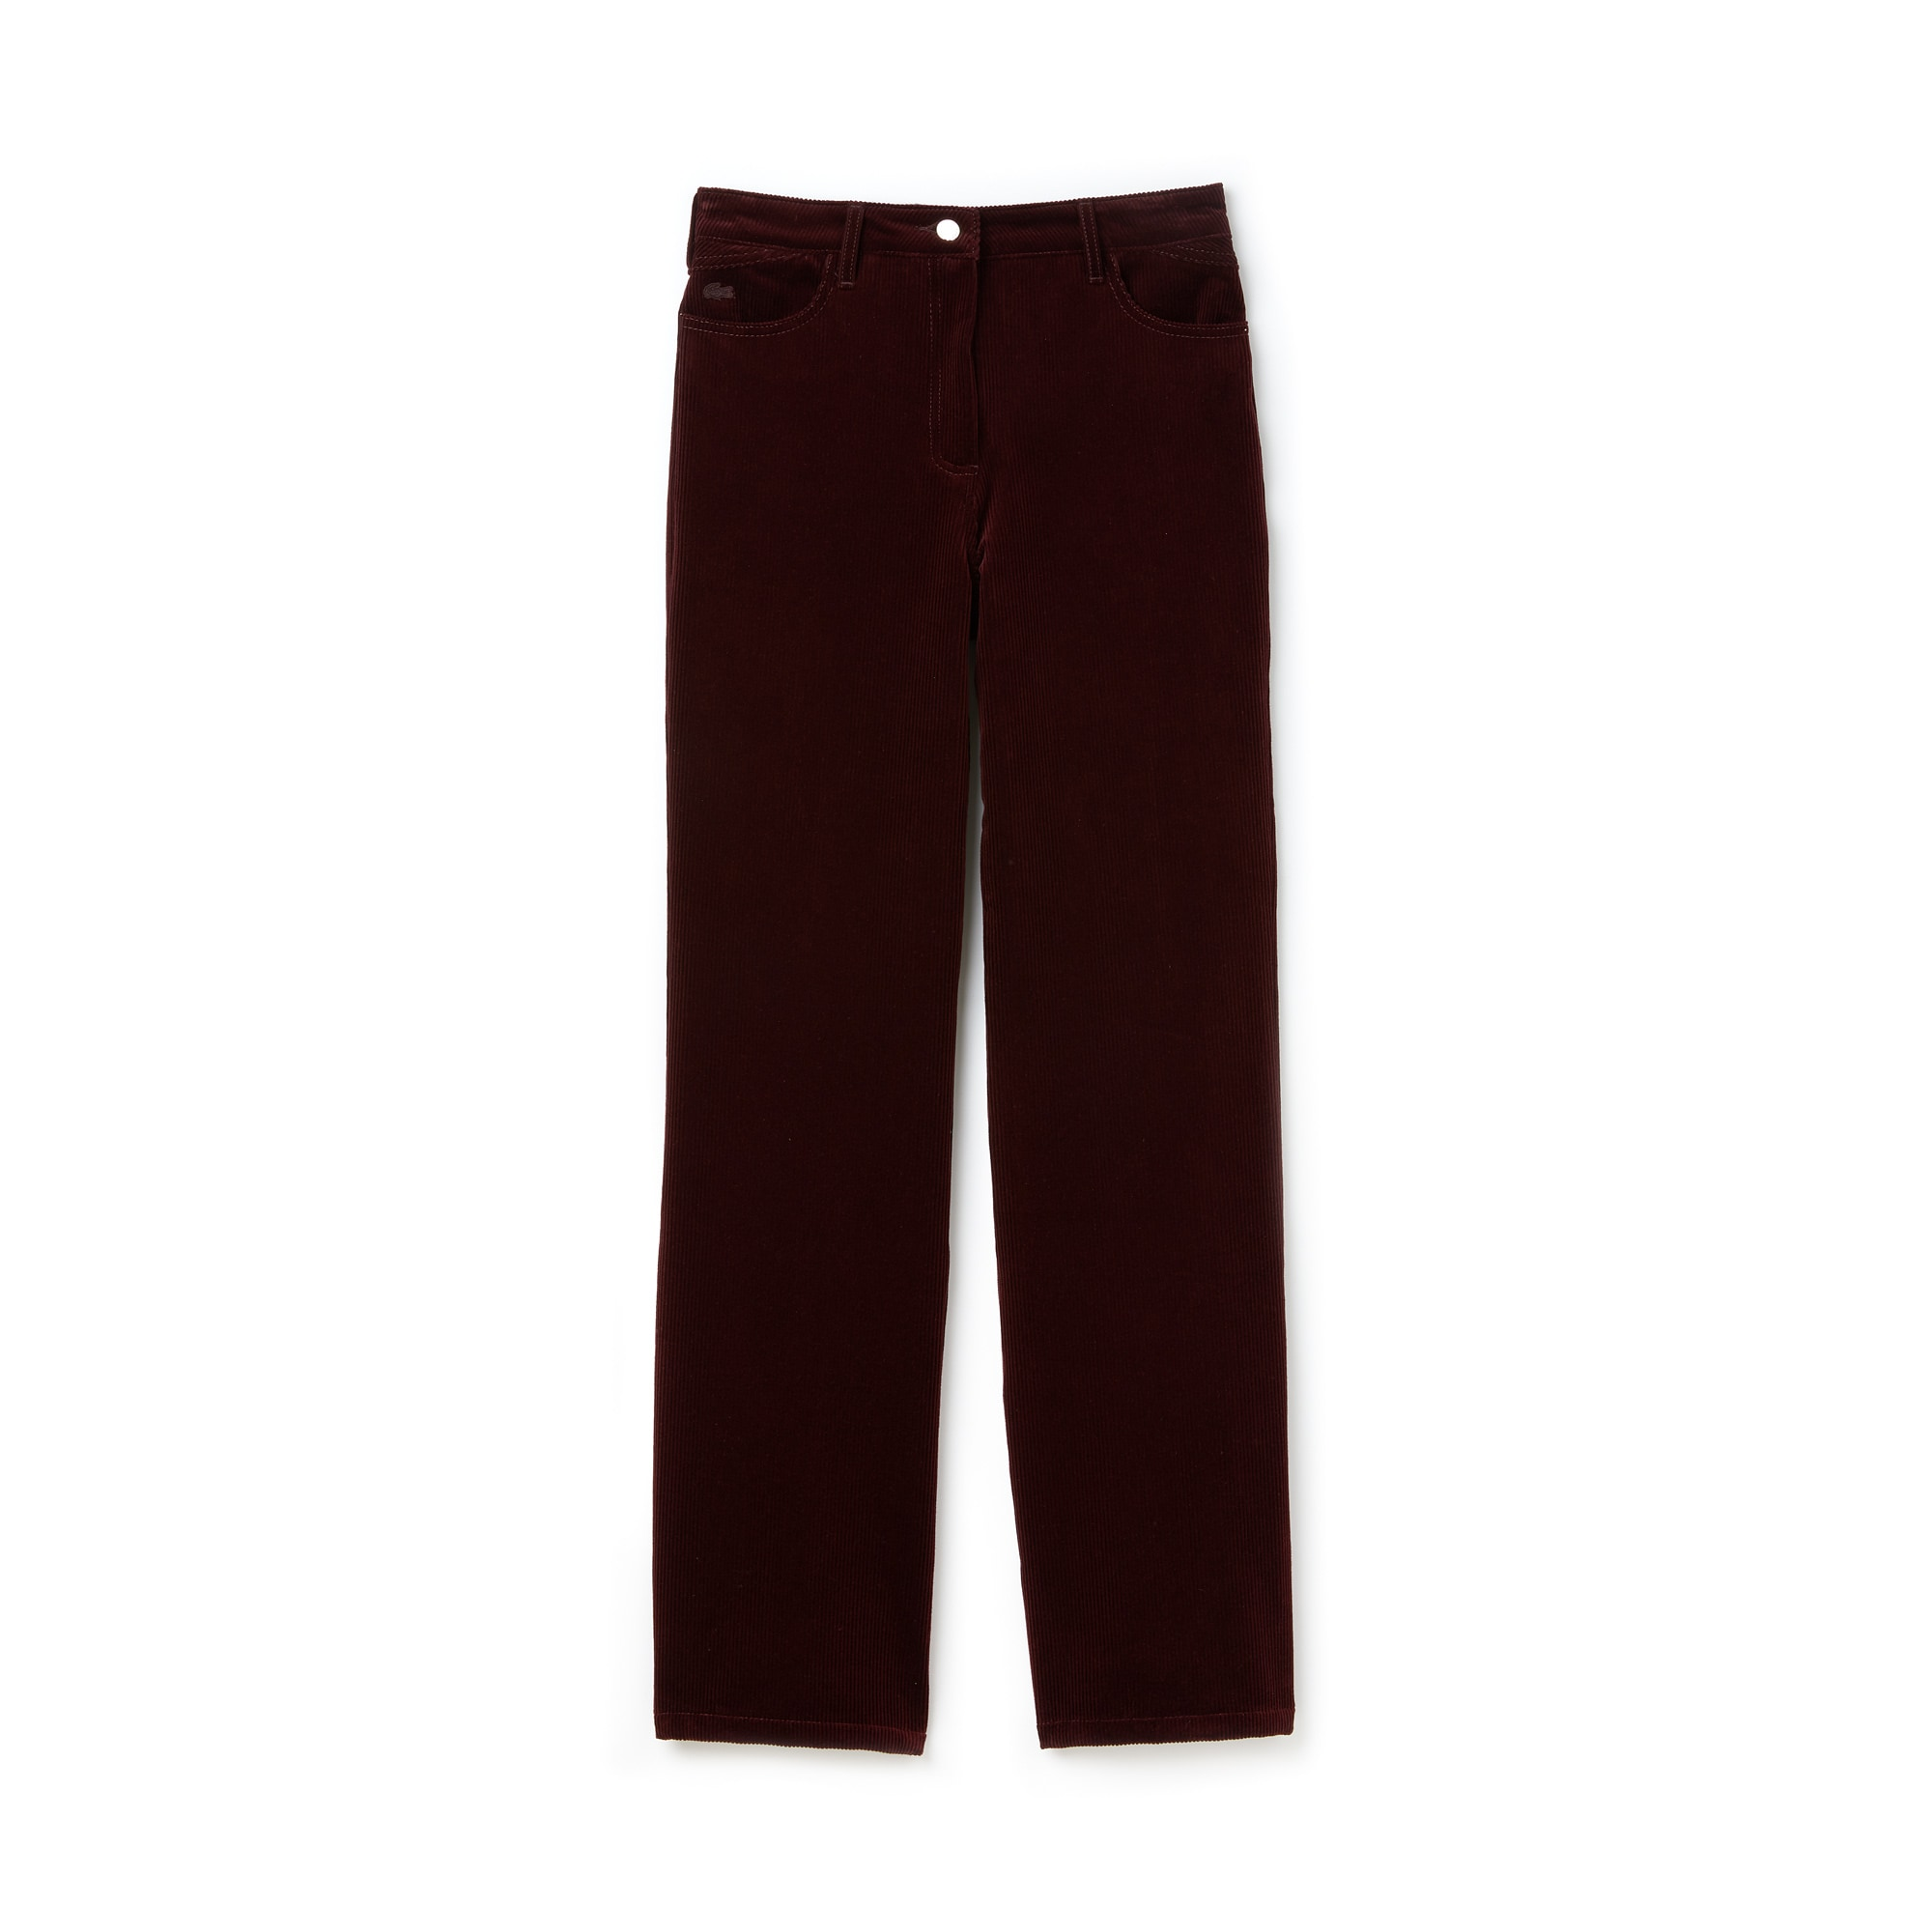 Women's Boxy Fit Striped Cotton Velour Pants